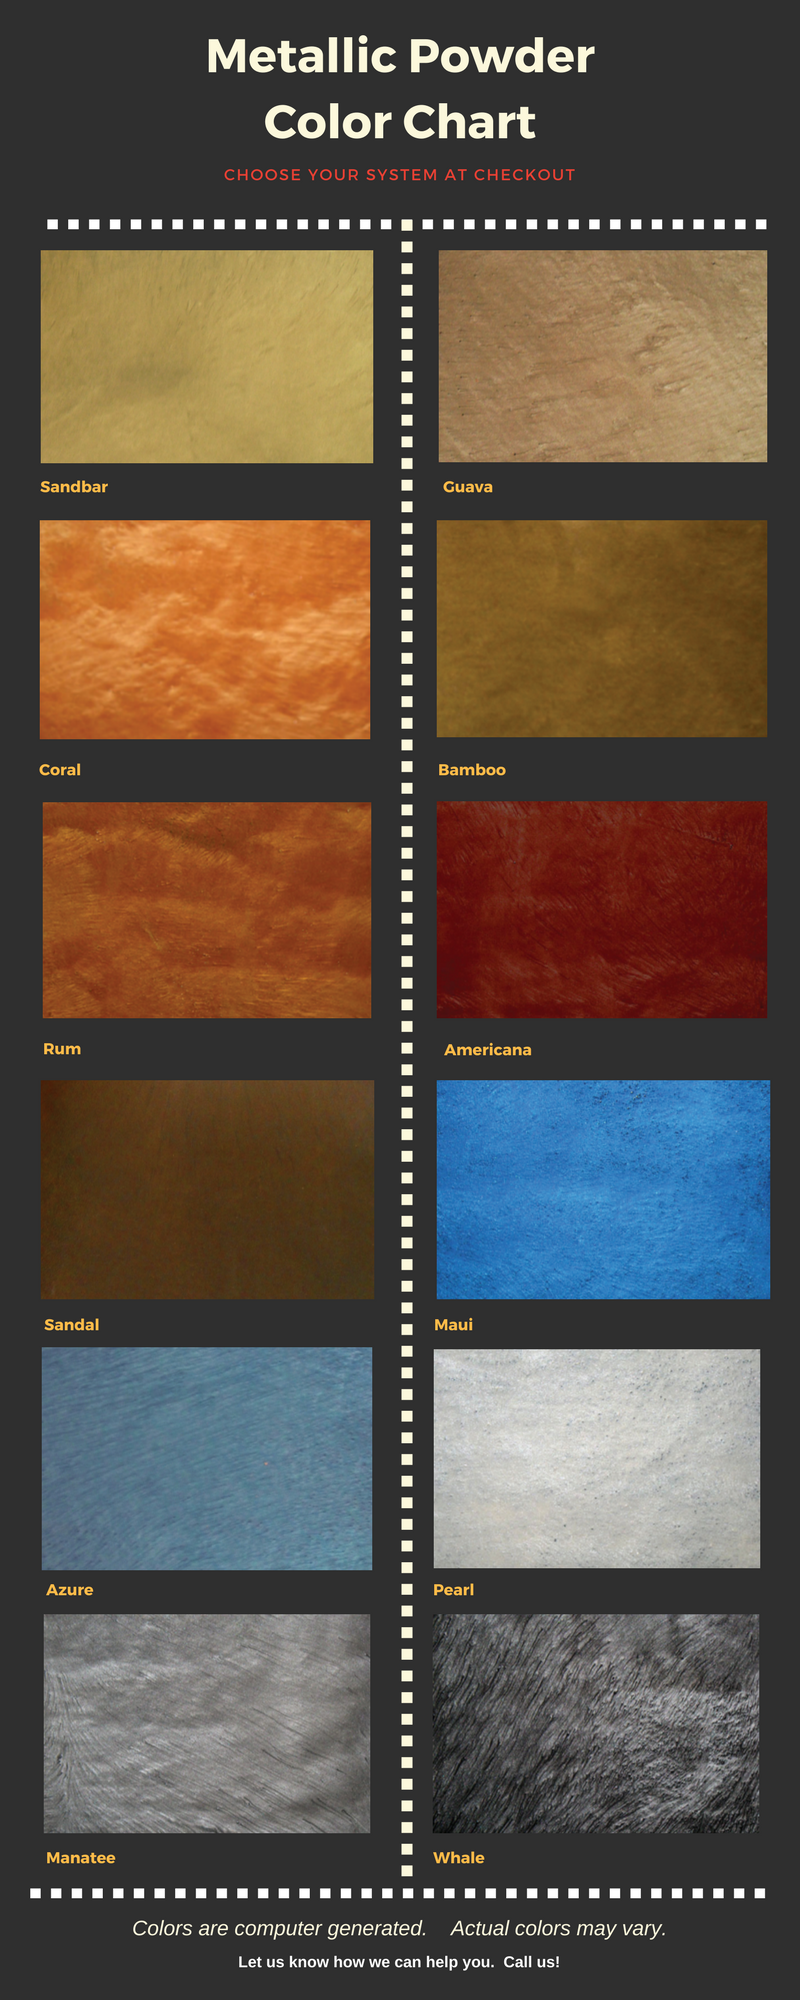 metallic-powder-color-chart.png